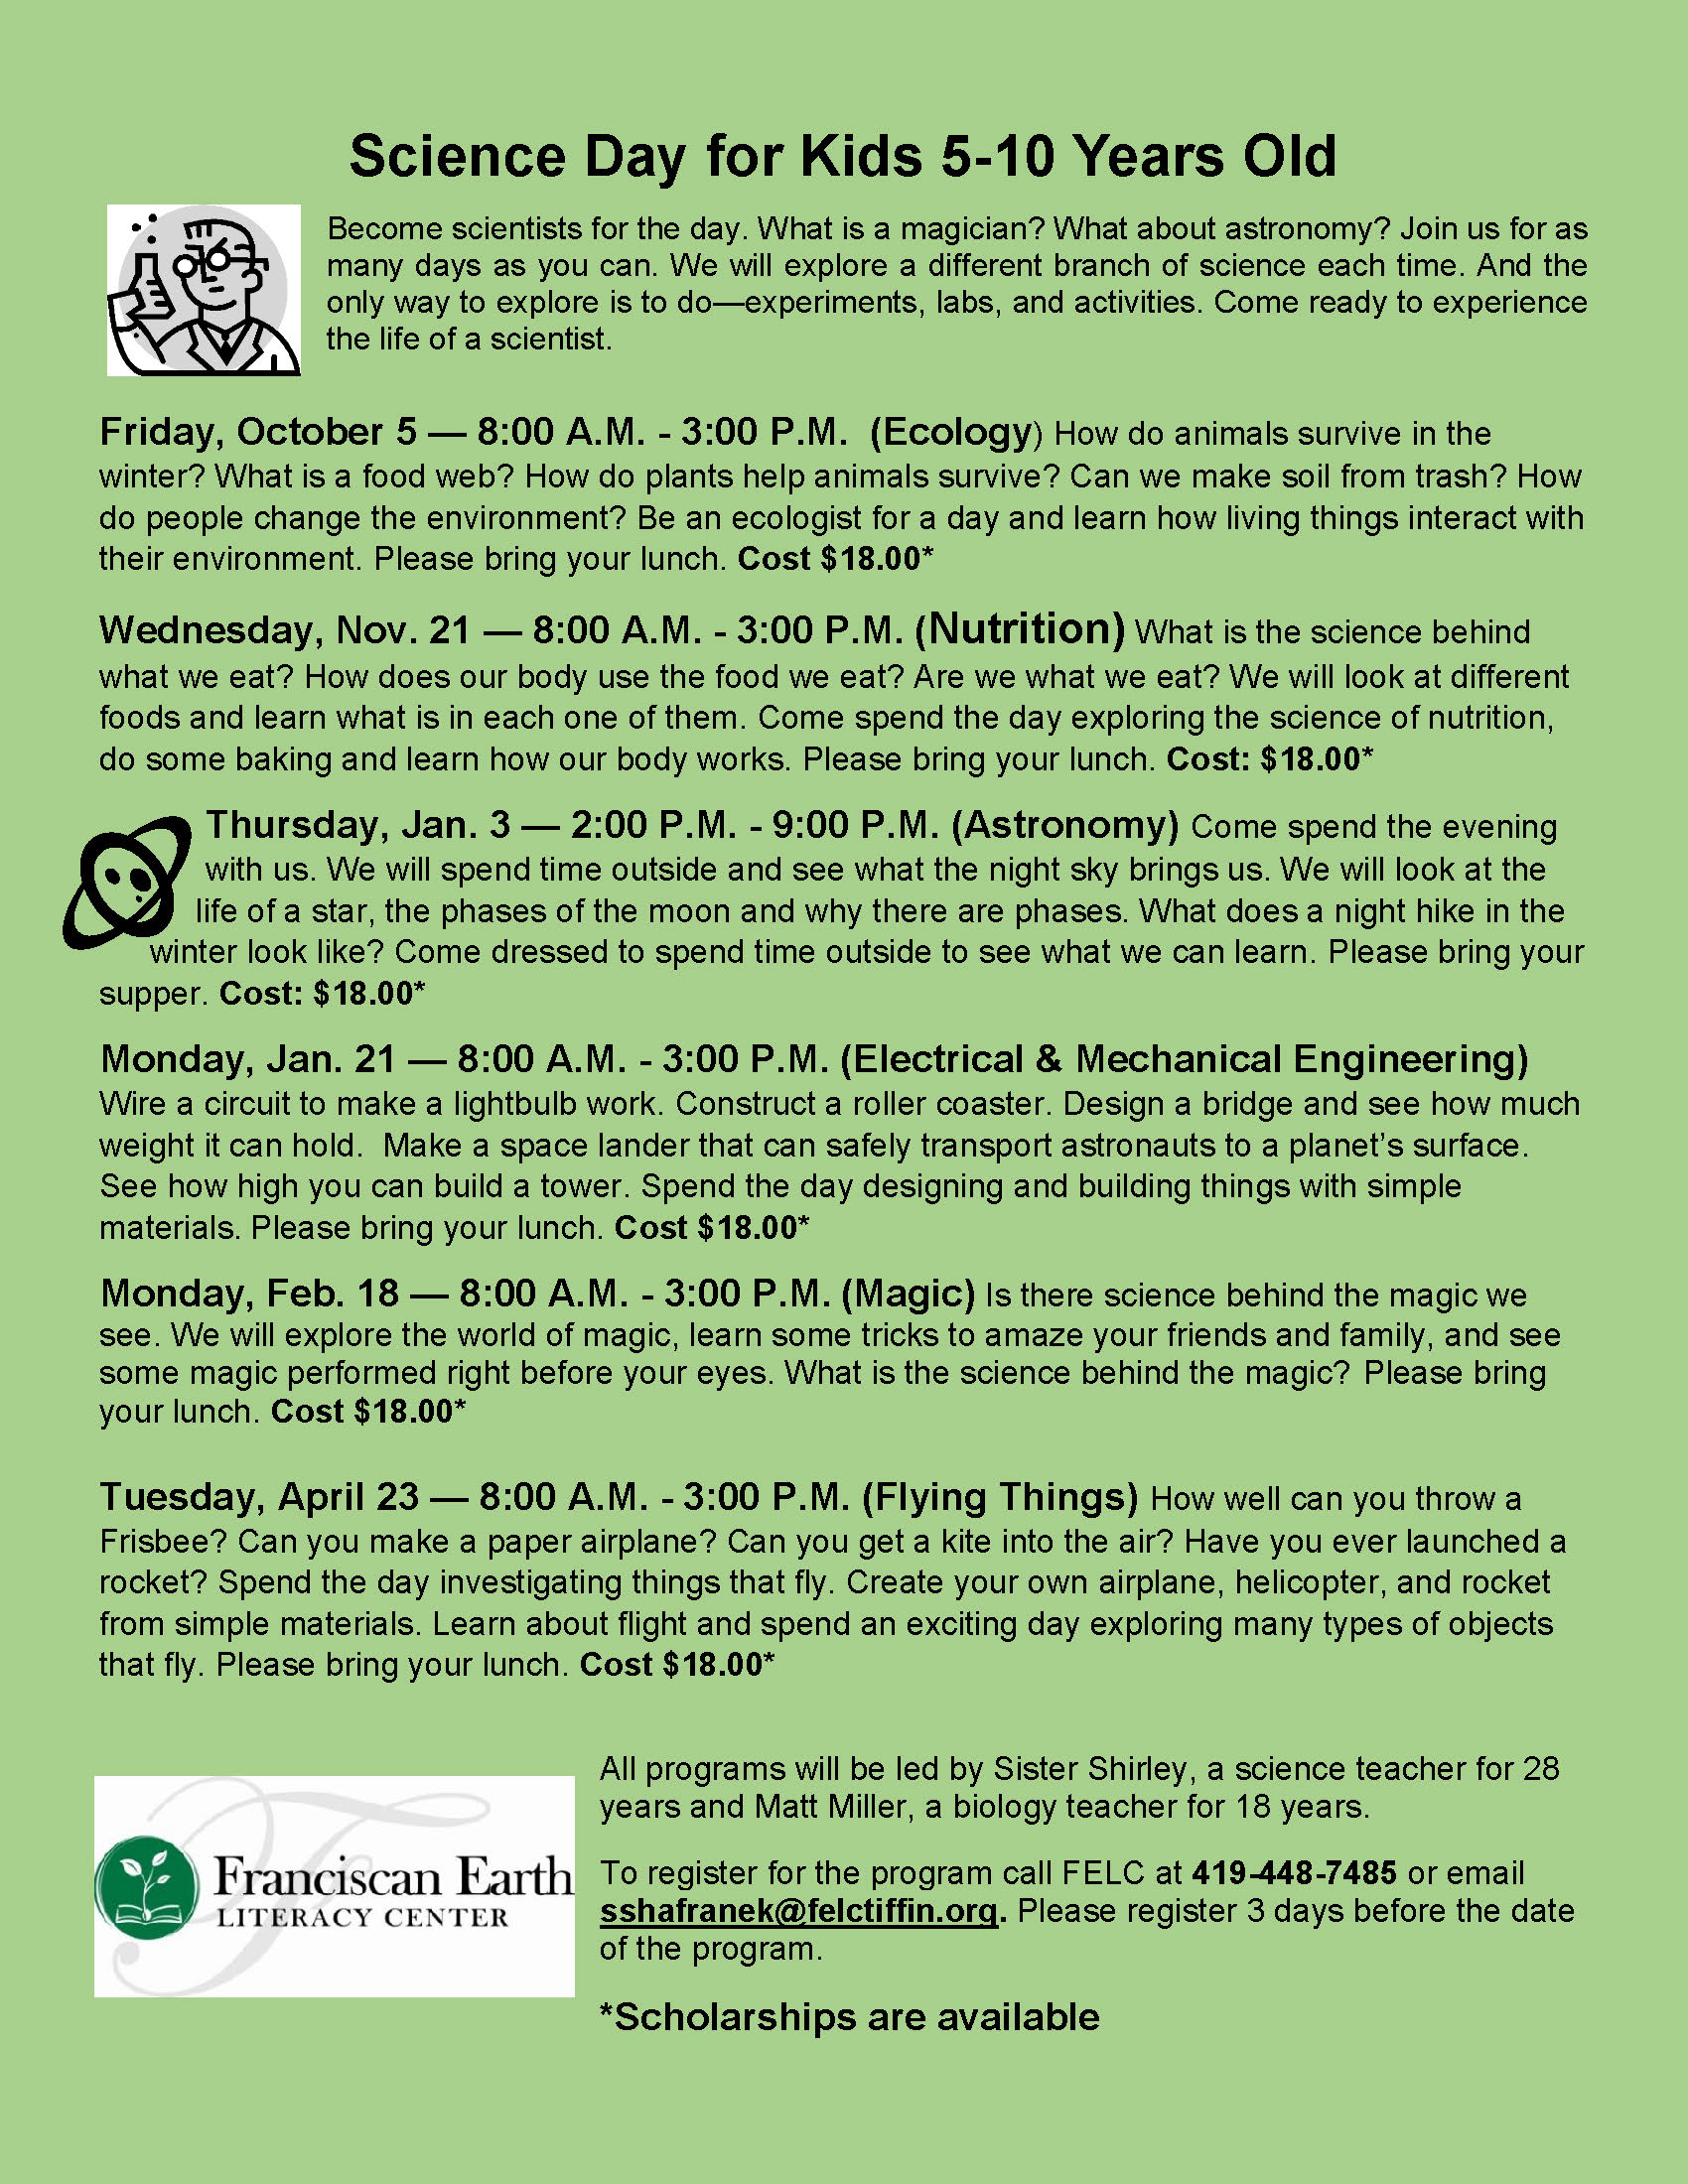 Science Day/Weekend/Holiday Programs | FELC Tiffin